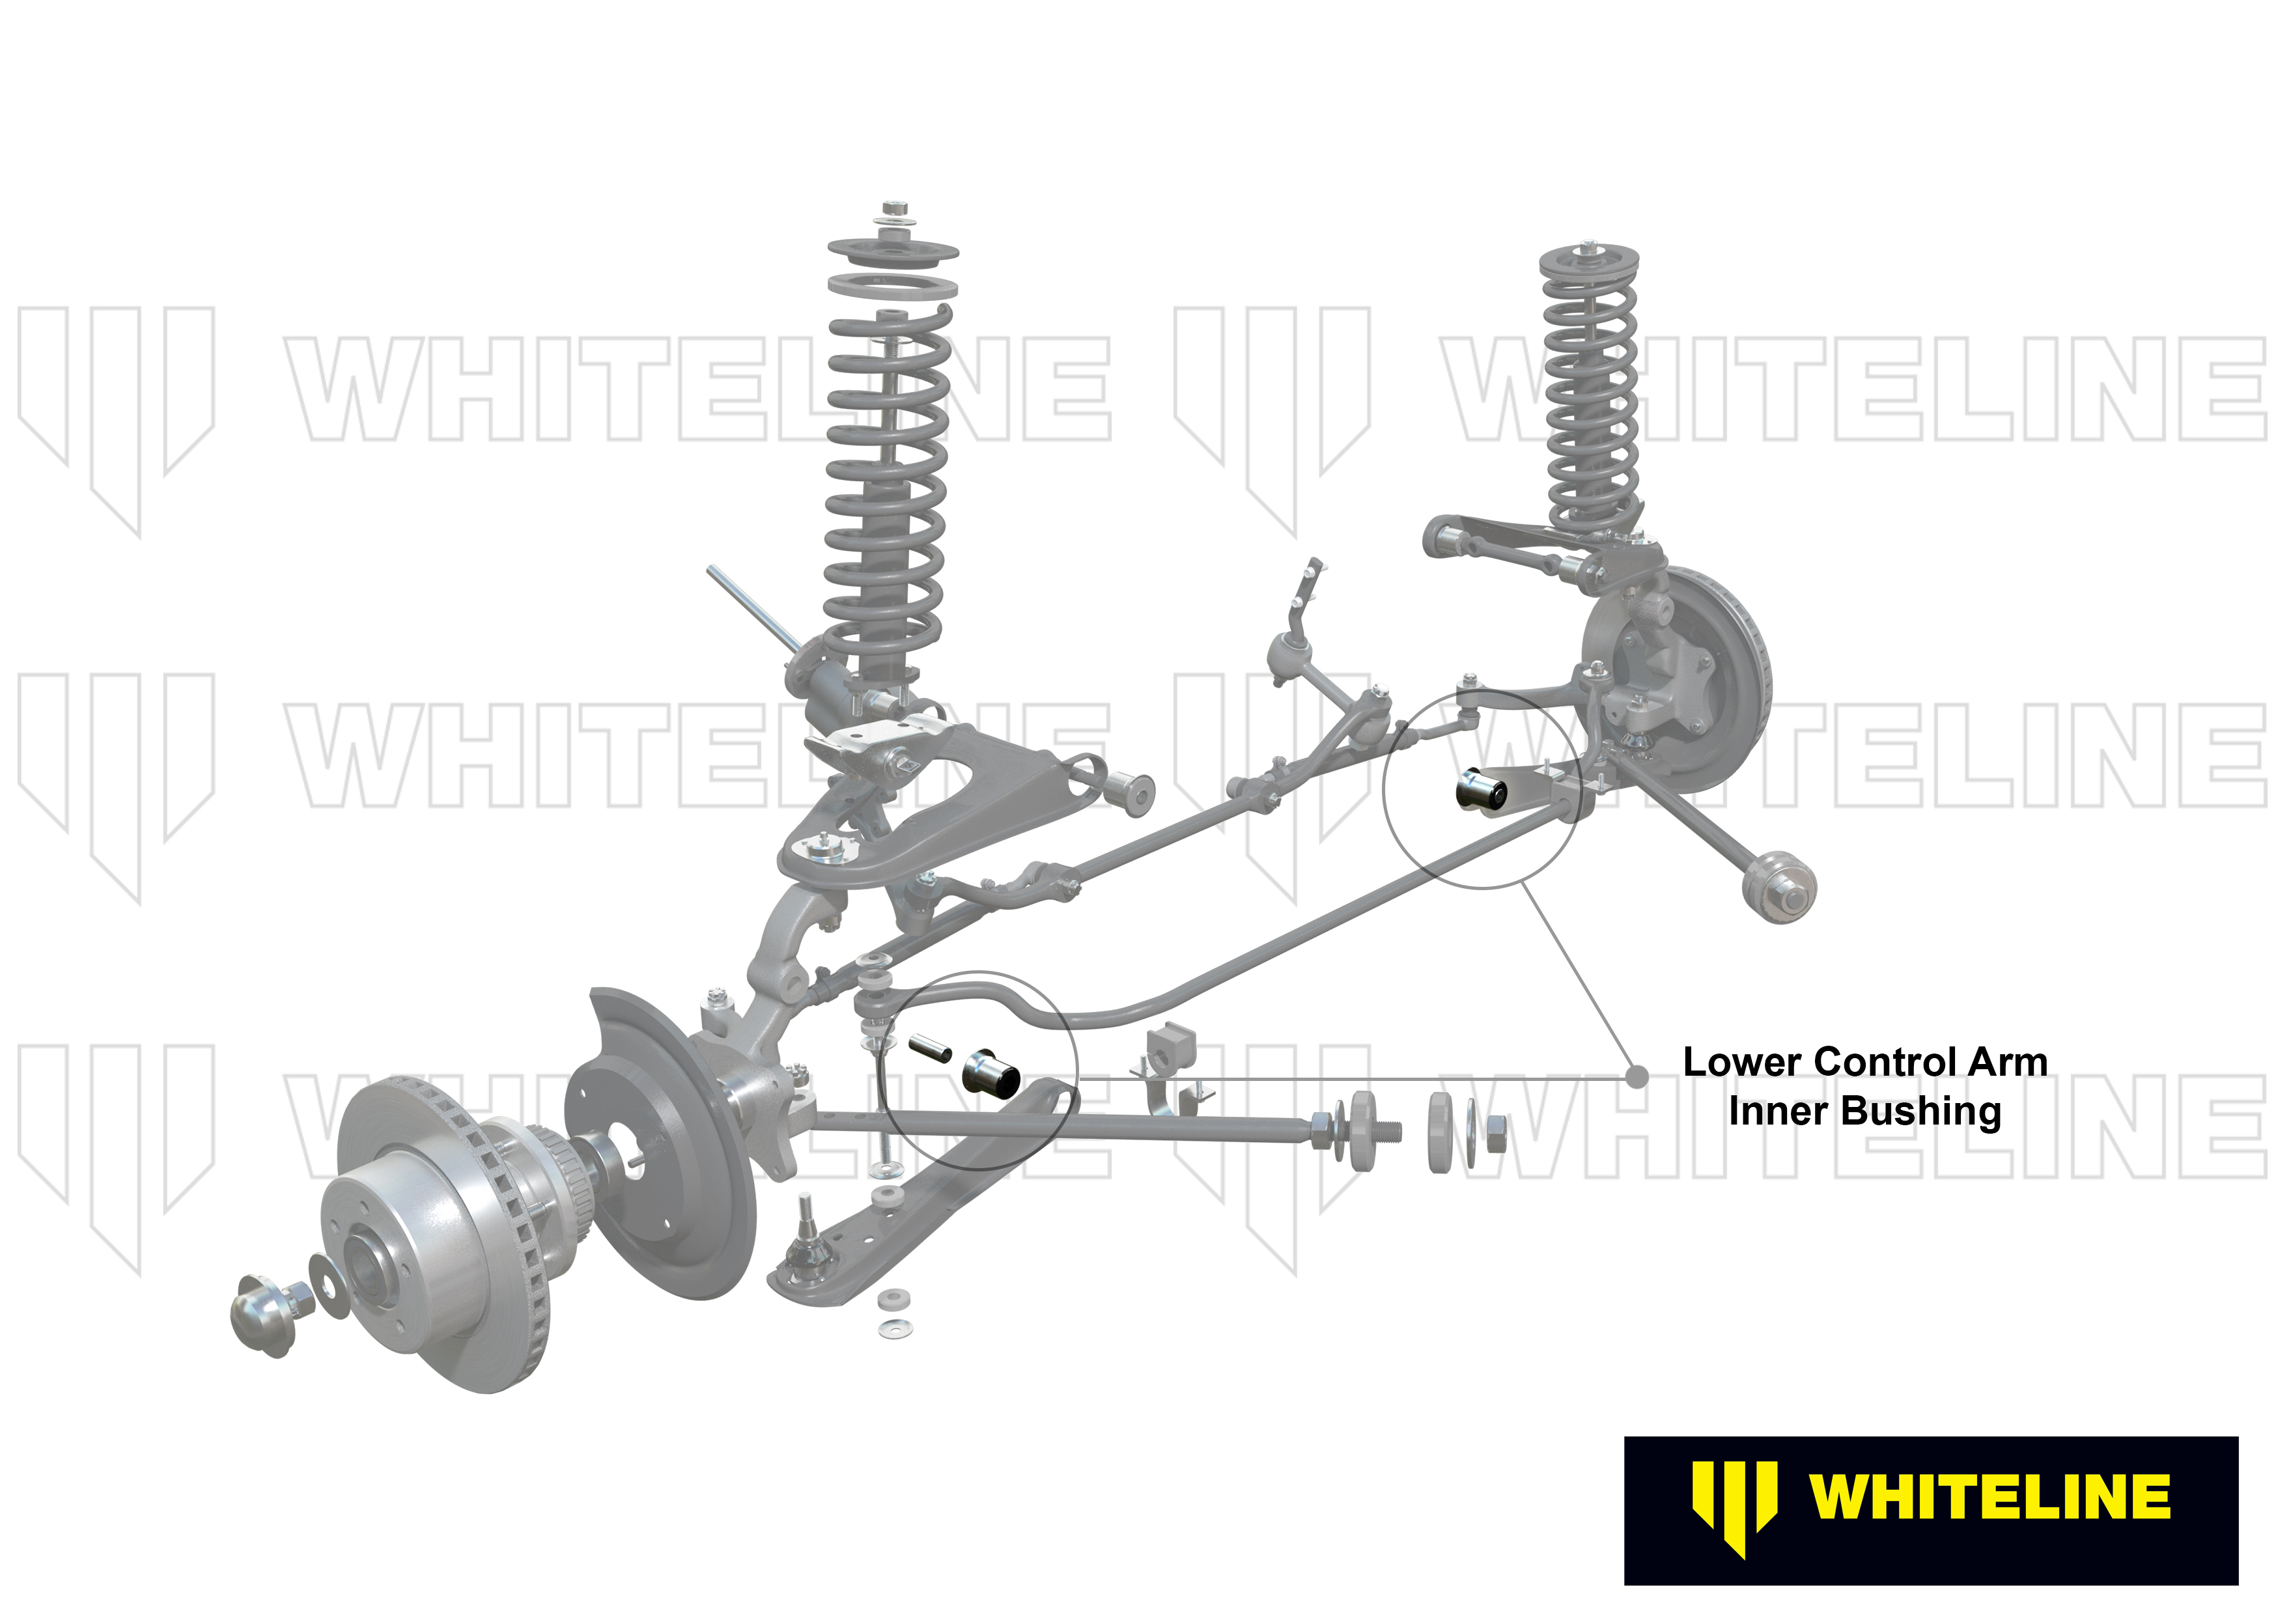 W51016 Whiteline Front Control Arm Lower Inner Bushing FOR FORD FALCON XB